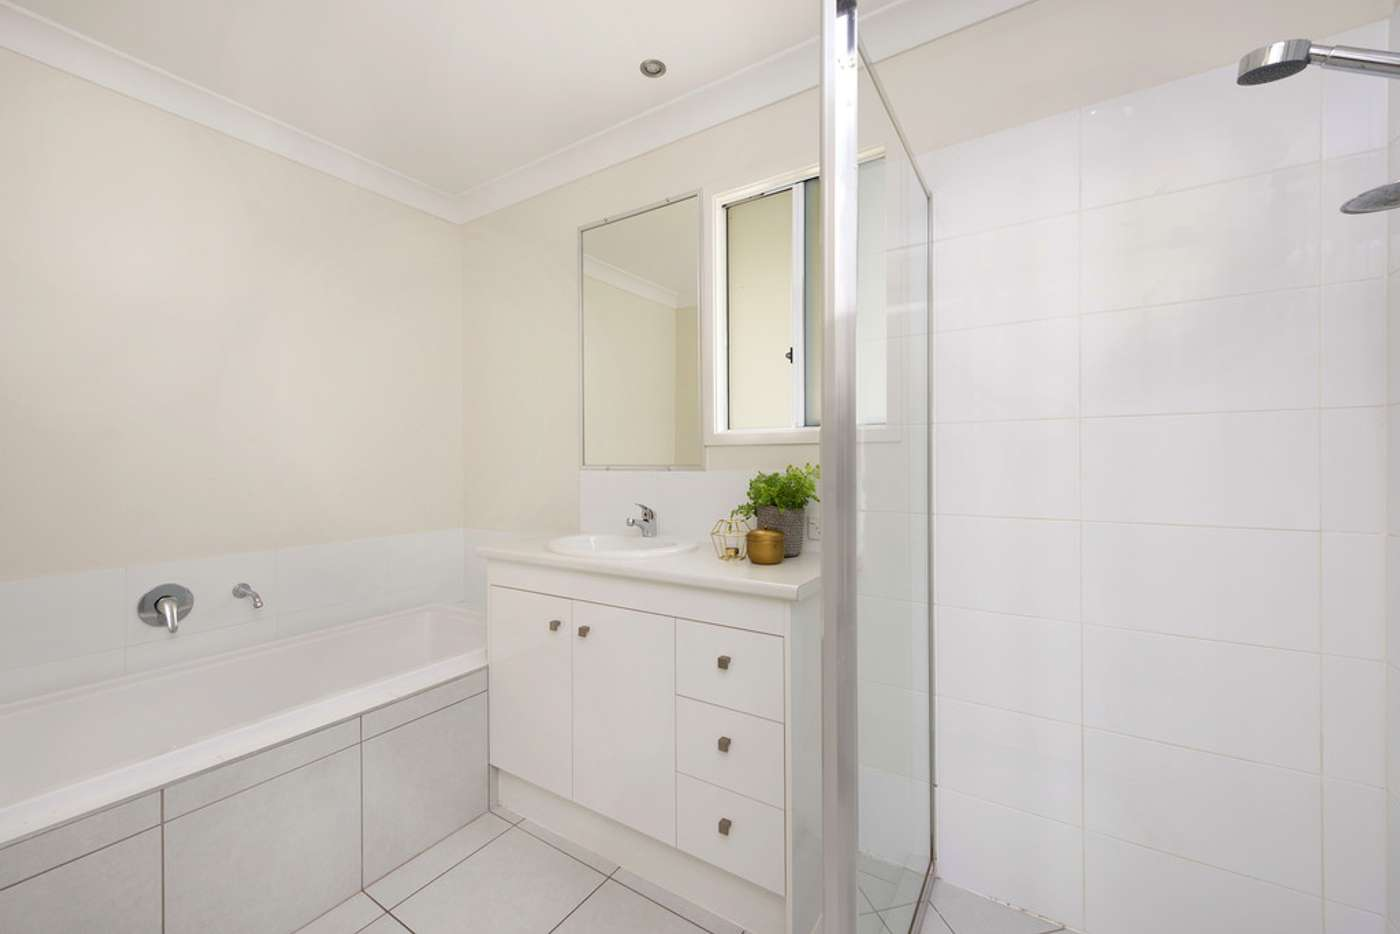 Sixth view of Homely house listing, 3/28 Waheed Street, Marsden QLD 4132